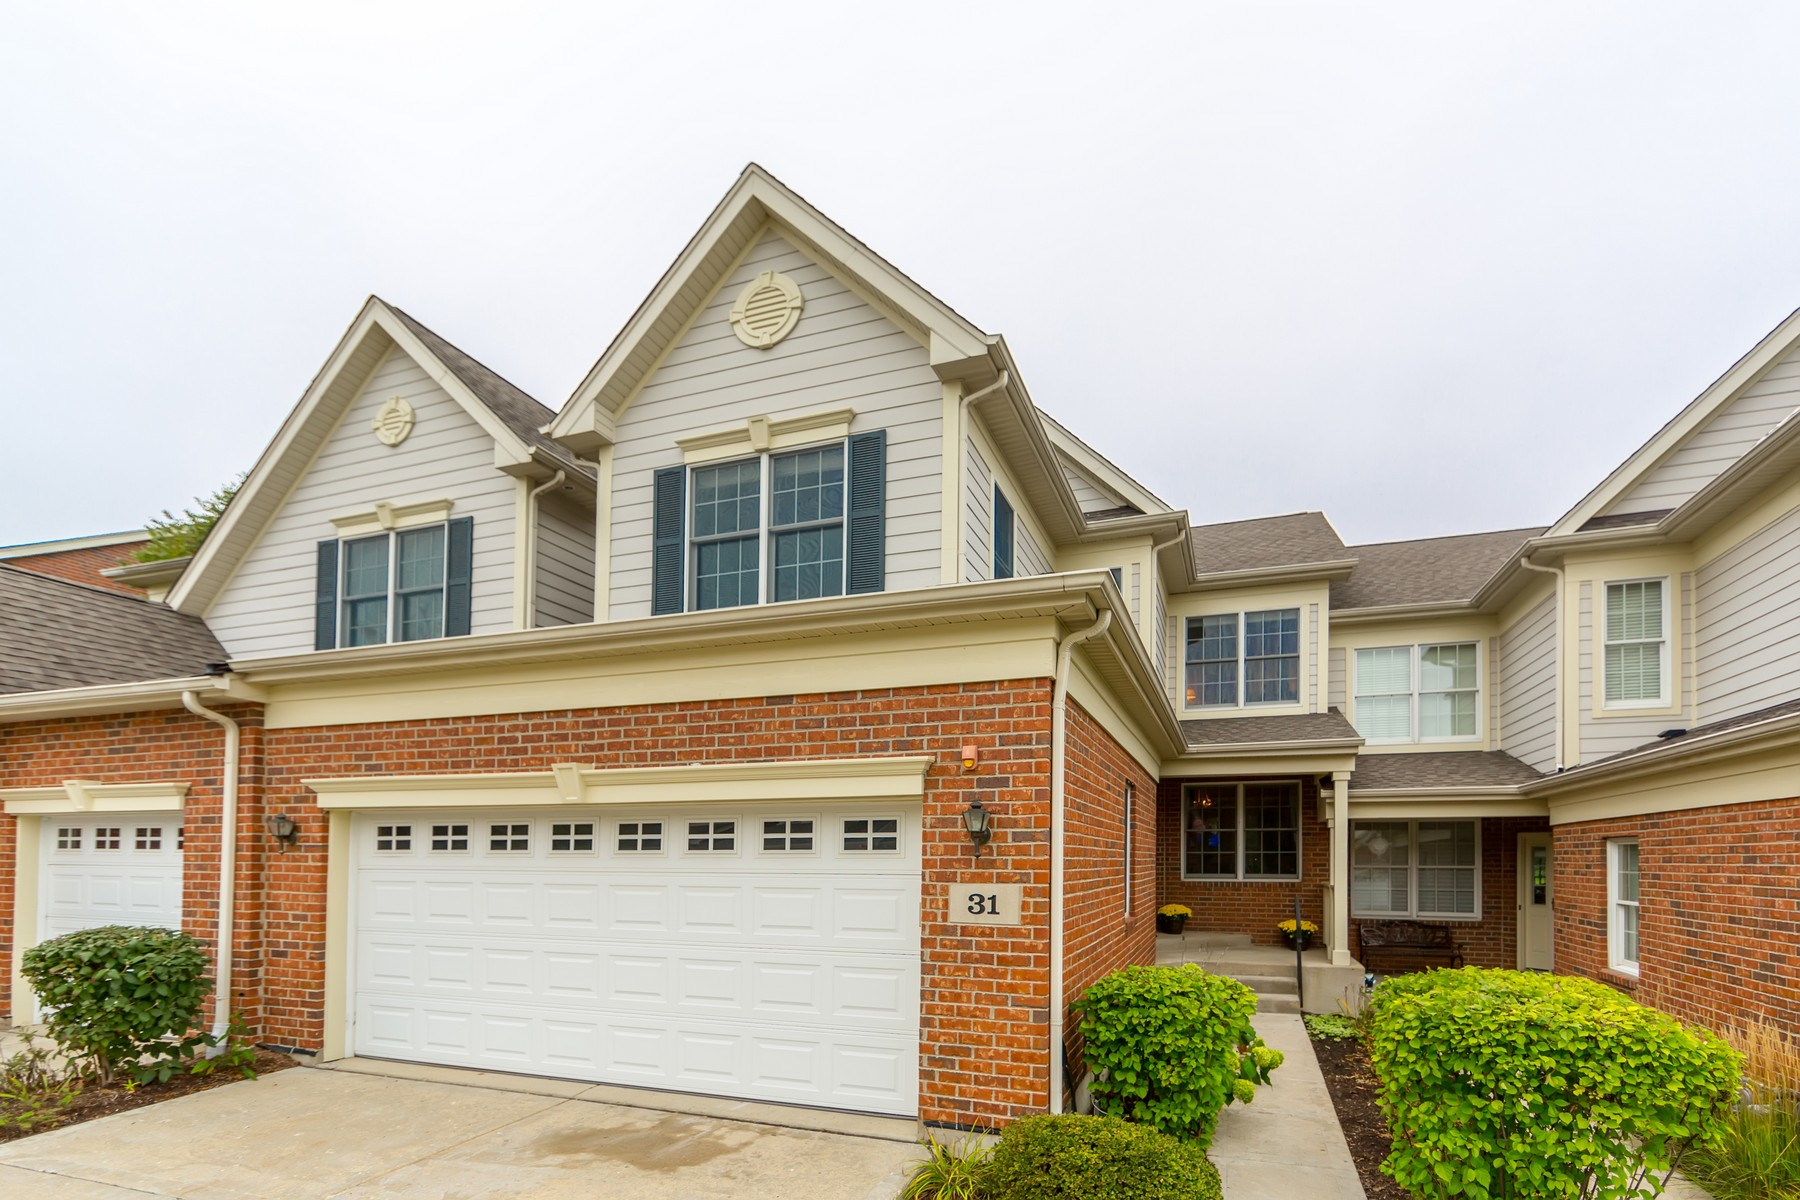 Townhouse for Sale at Maintenance Free Townhome 31 Red Tail Drive Hawthorn Woods, Illinois 60047 United States